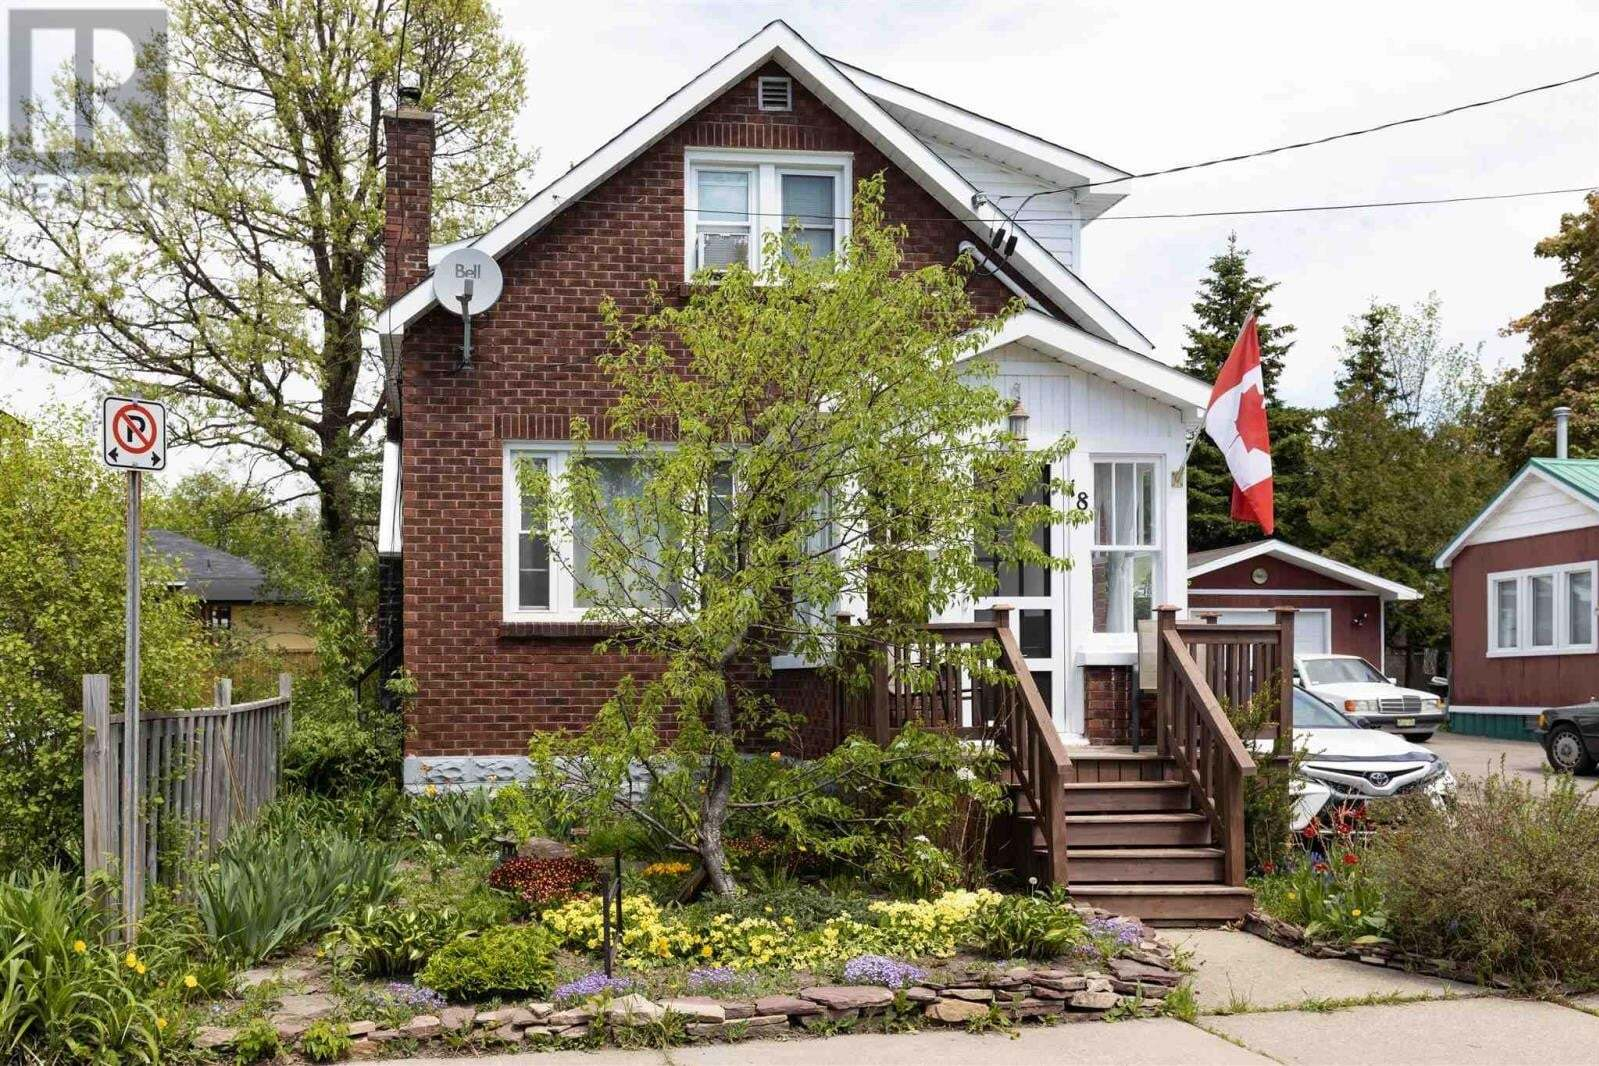 Townhouse for sale at 18 Hawthorne Ave Sault Ste. Marie Ontario - MLS: SM128298